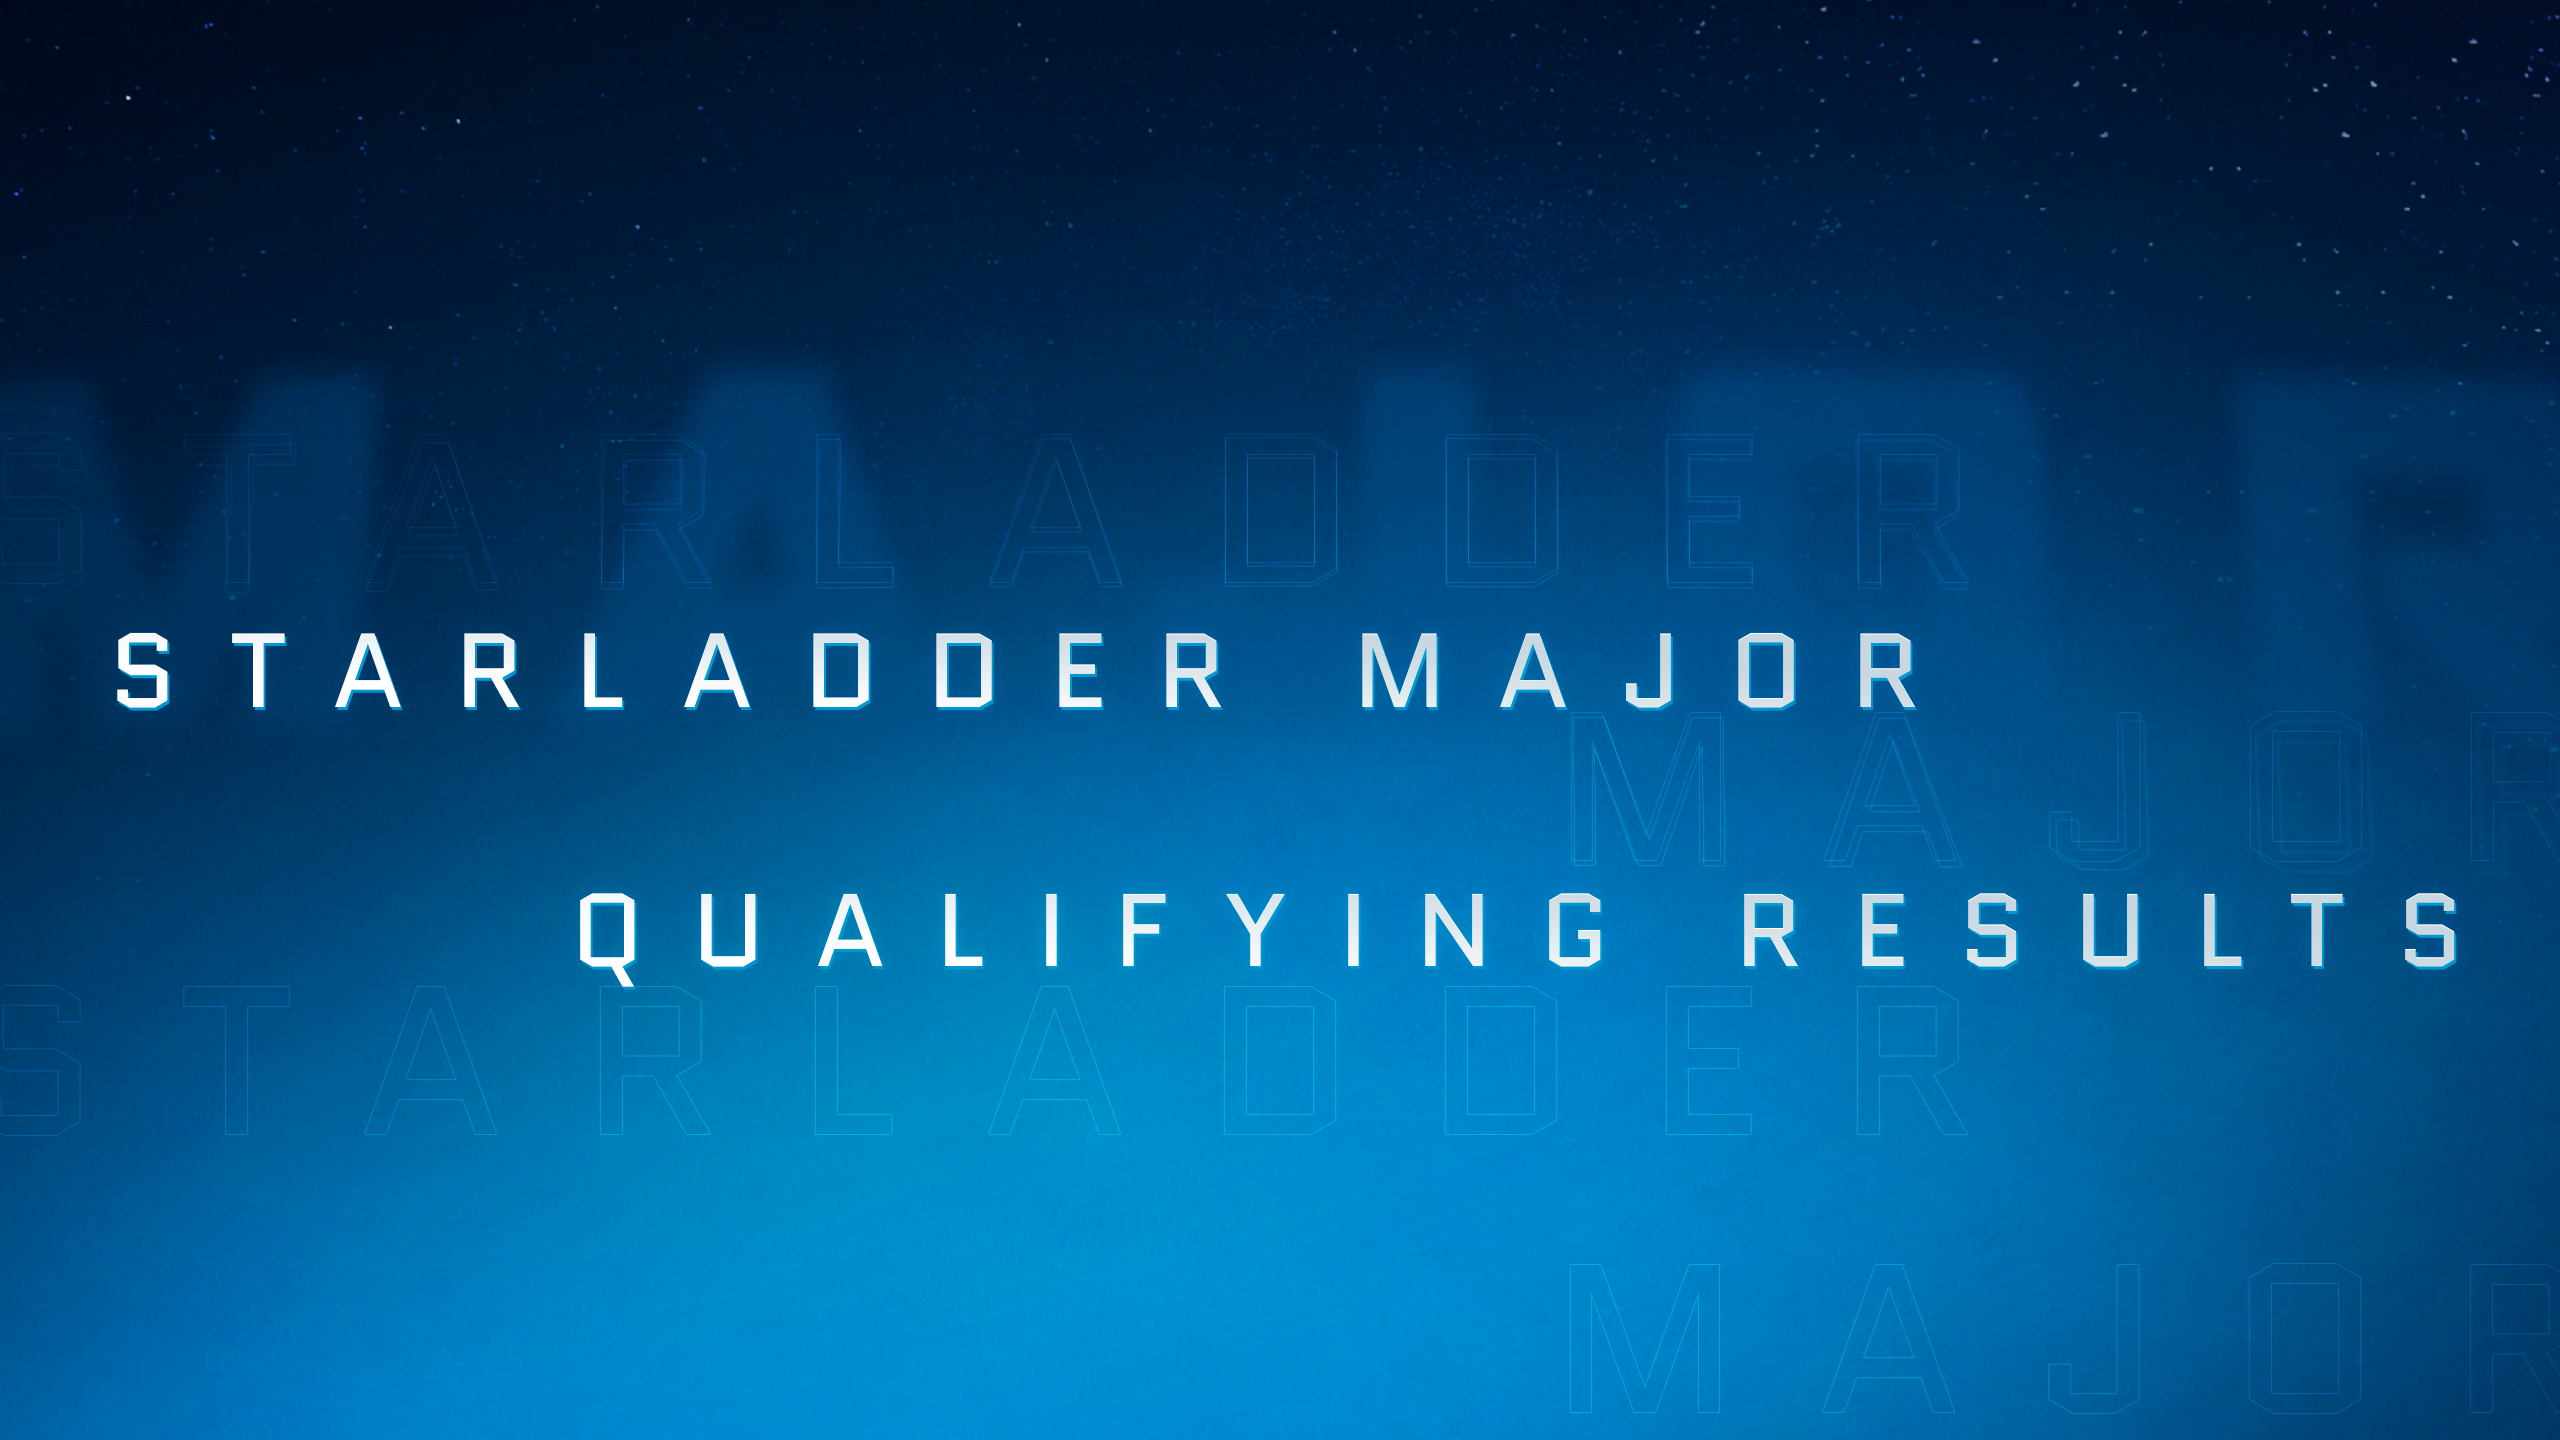 Results of closed qualifiers for StarLadder Major 2019